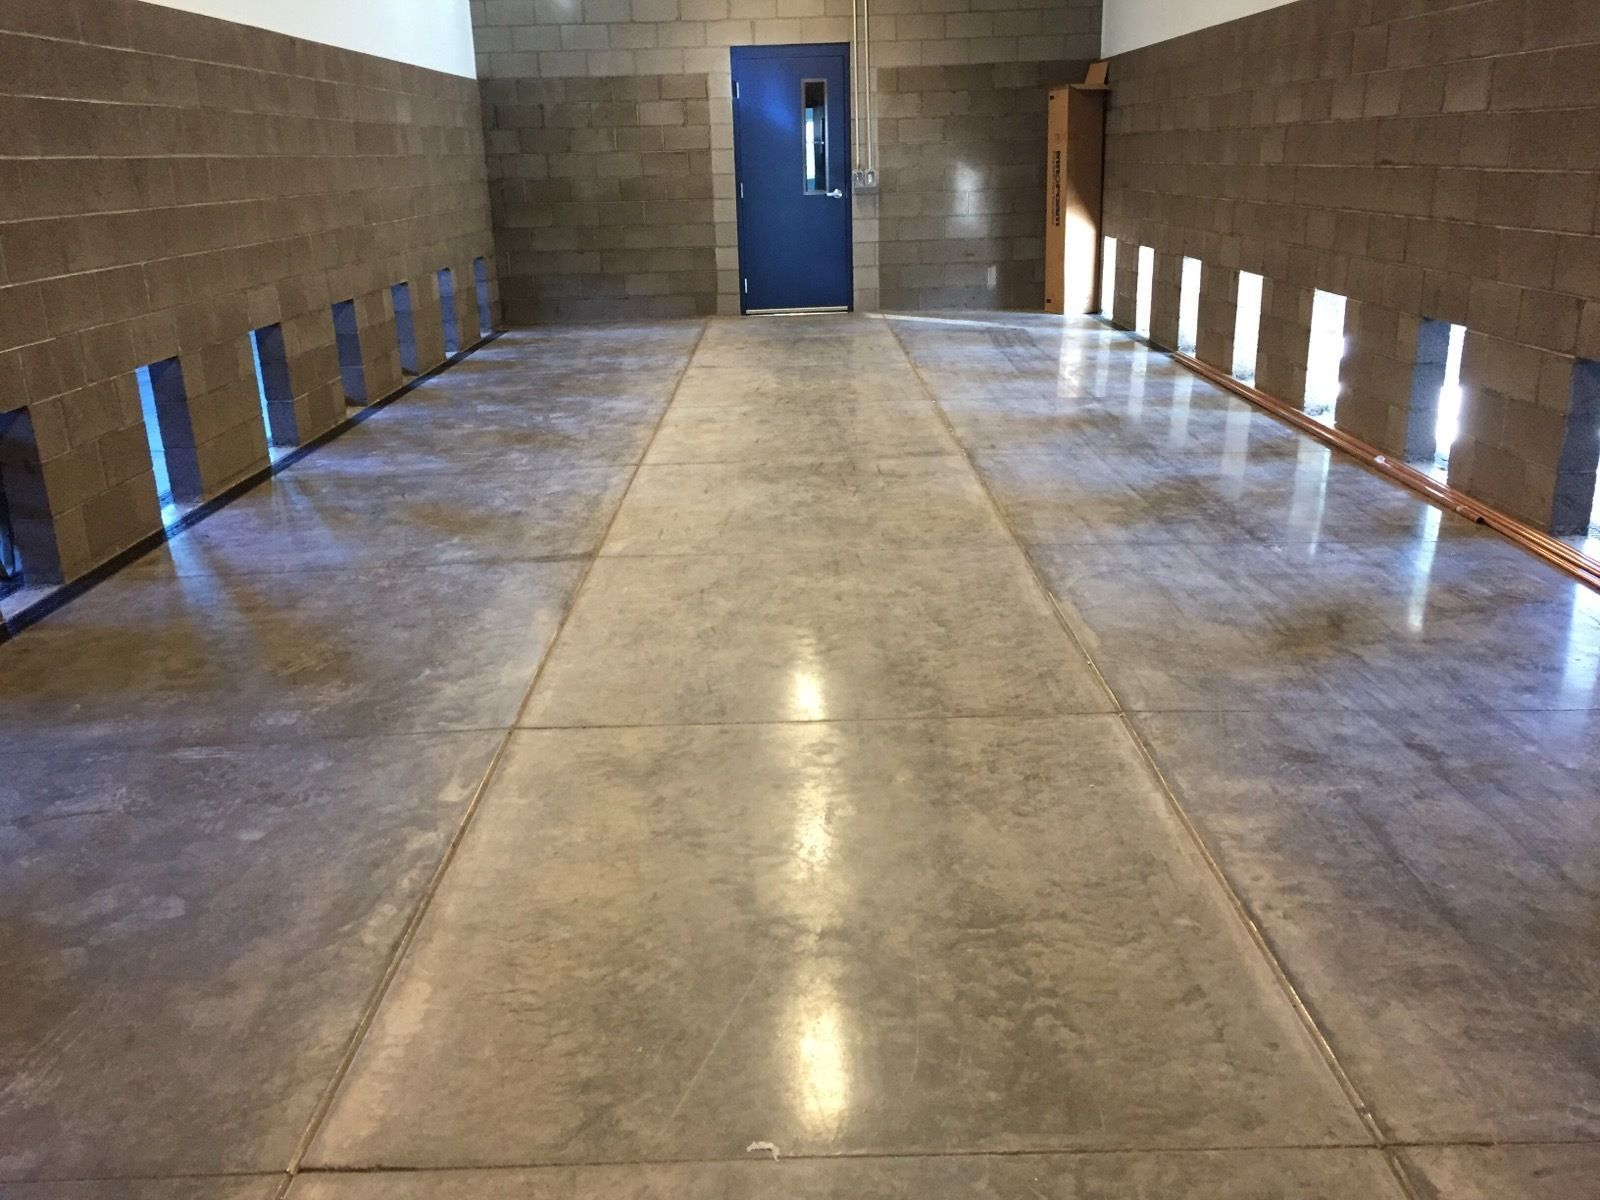 Kennels before Dividers